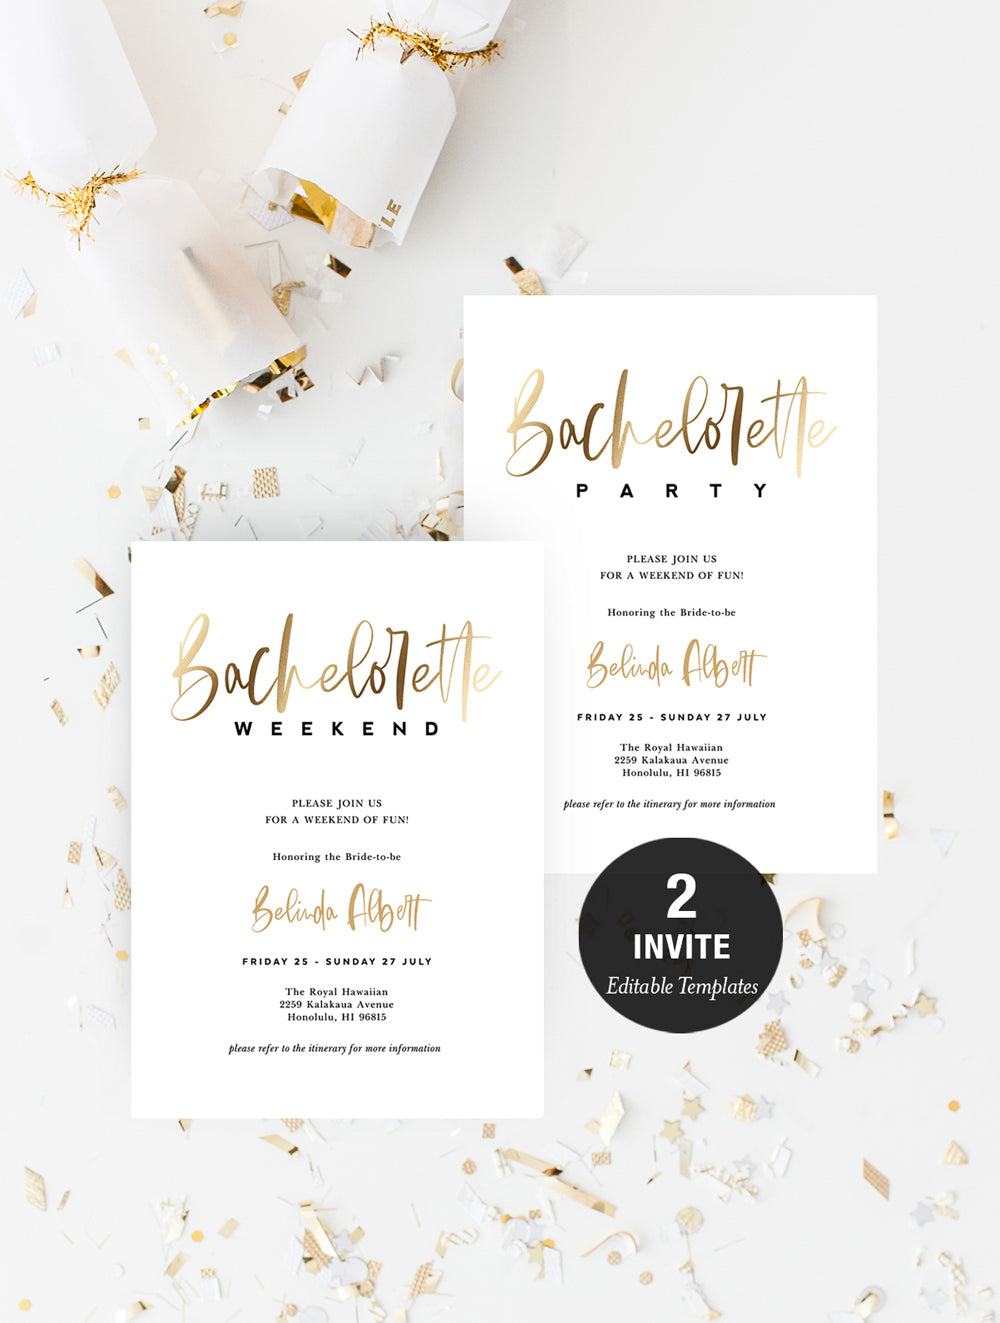 Bachelorette Weekend Invitation Gold #T004